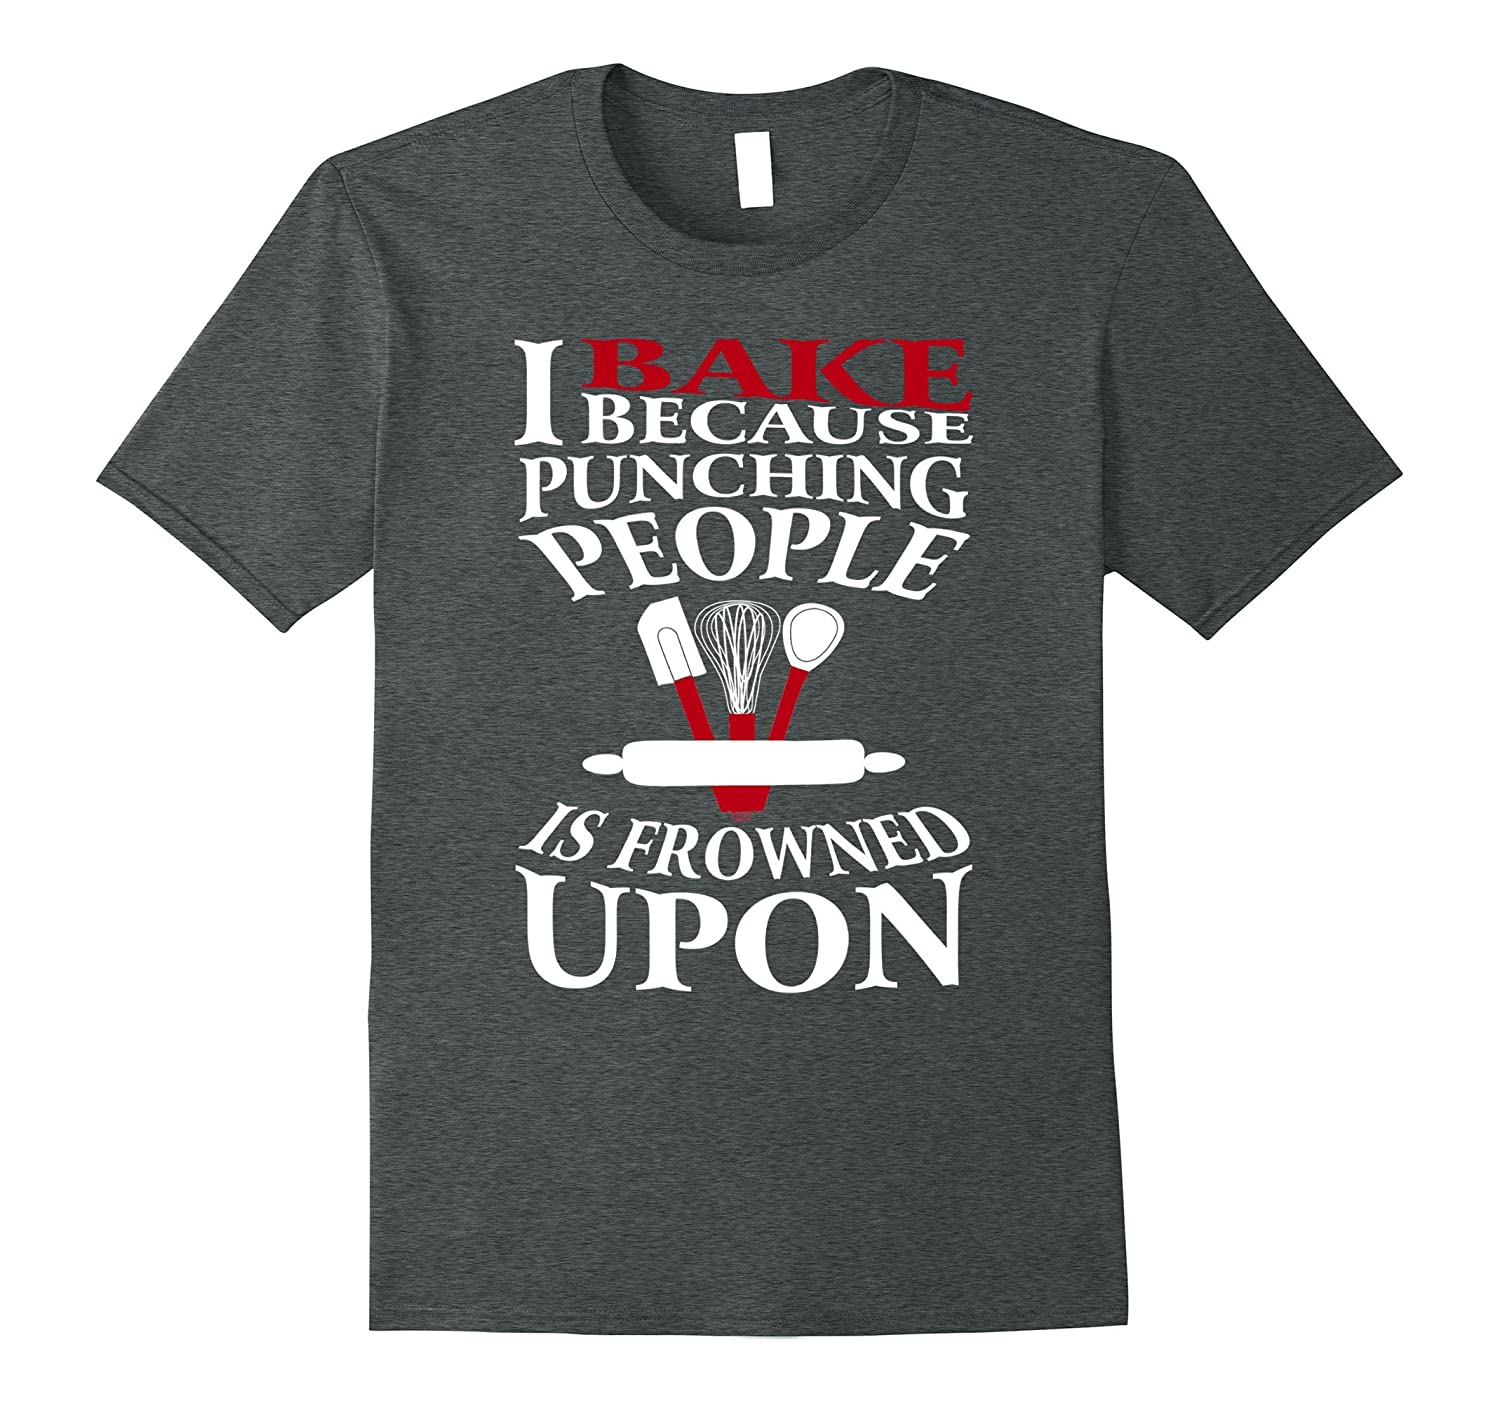 Love Baking Tshirt I bake because punching people is frowned